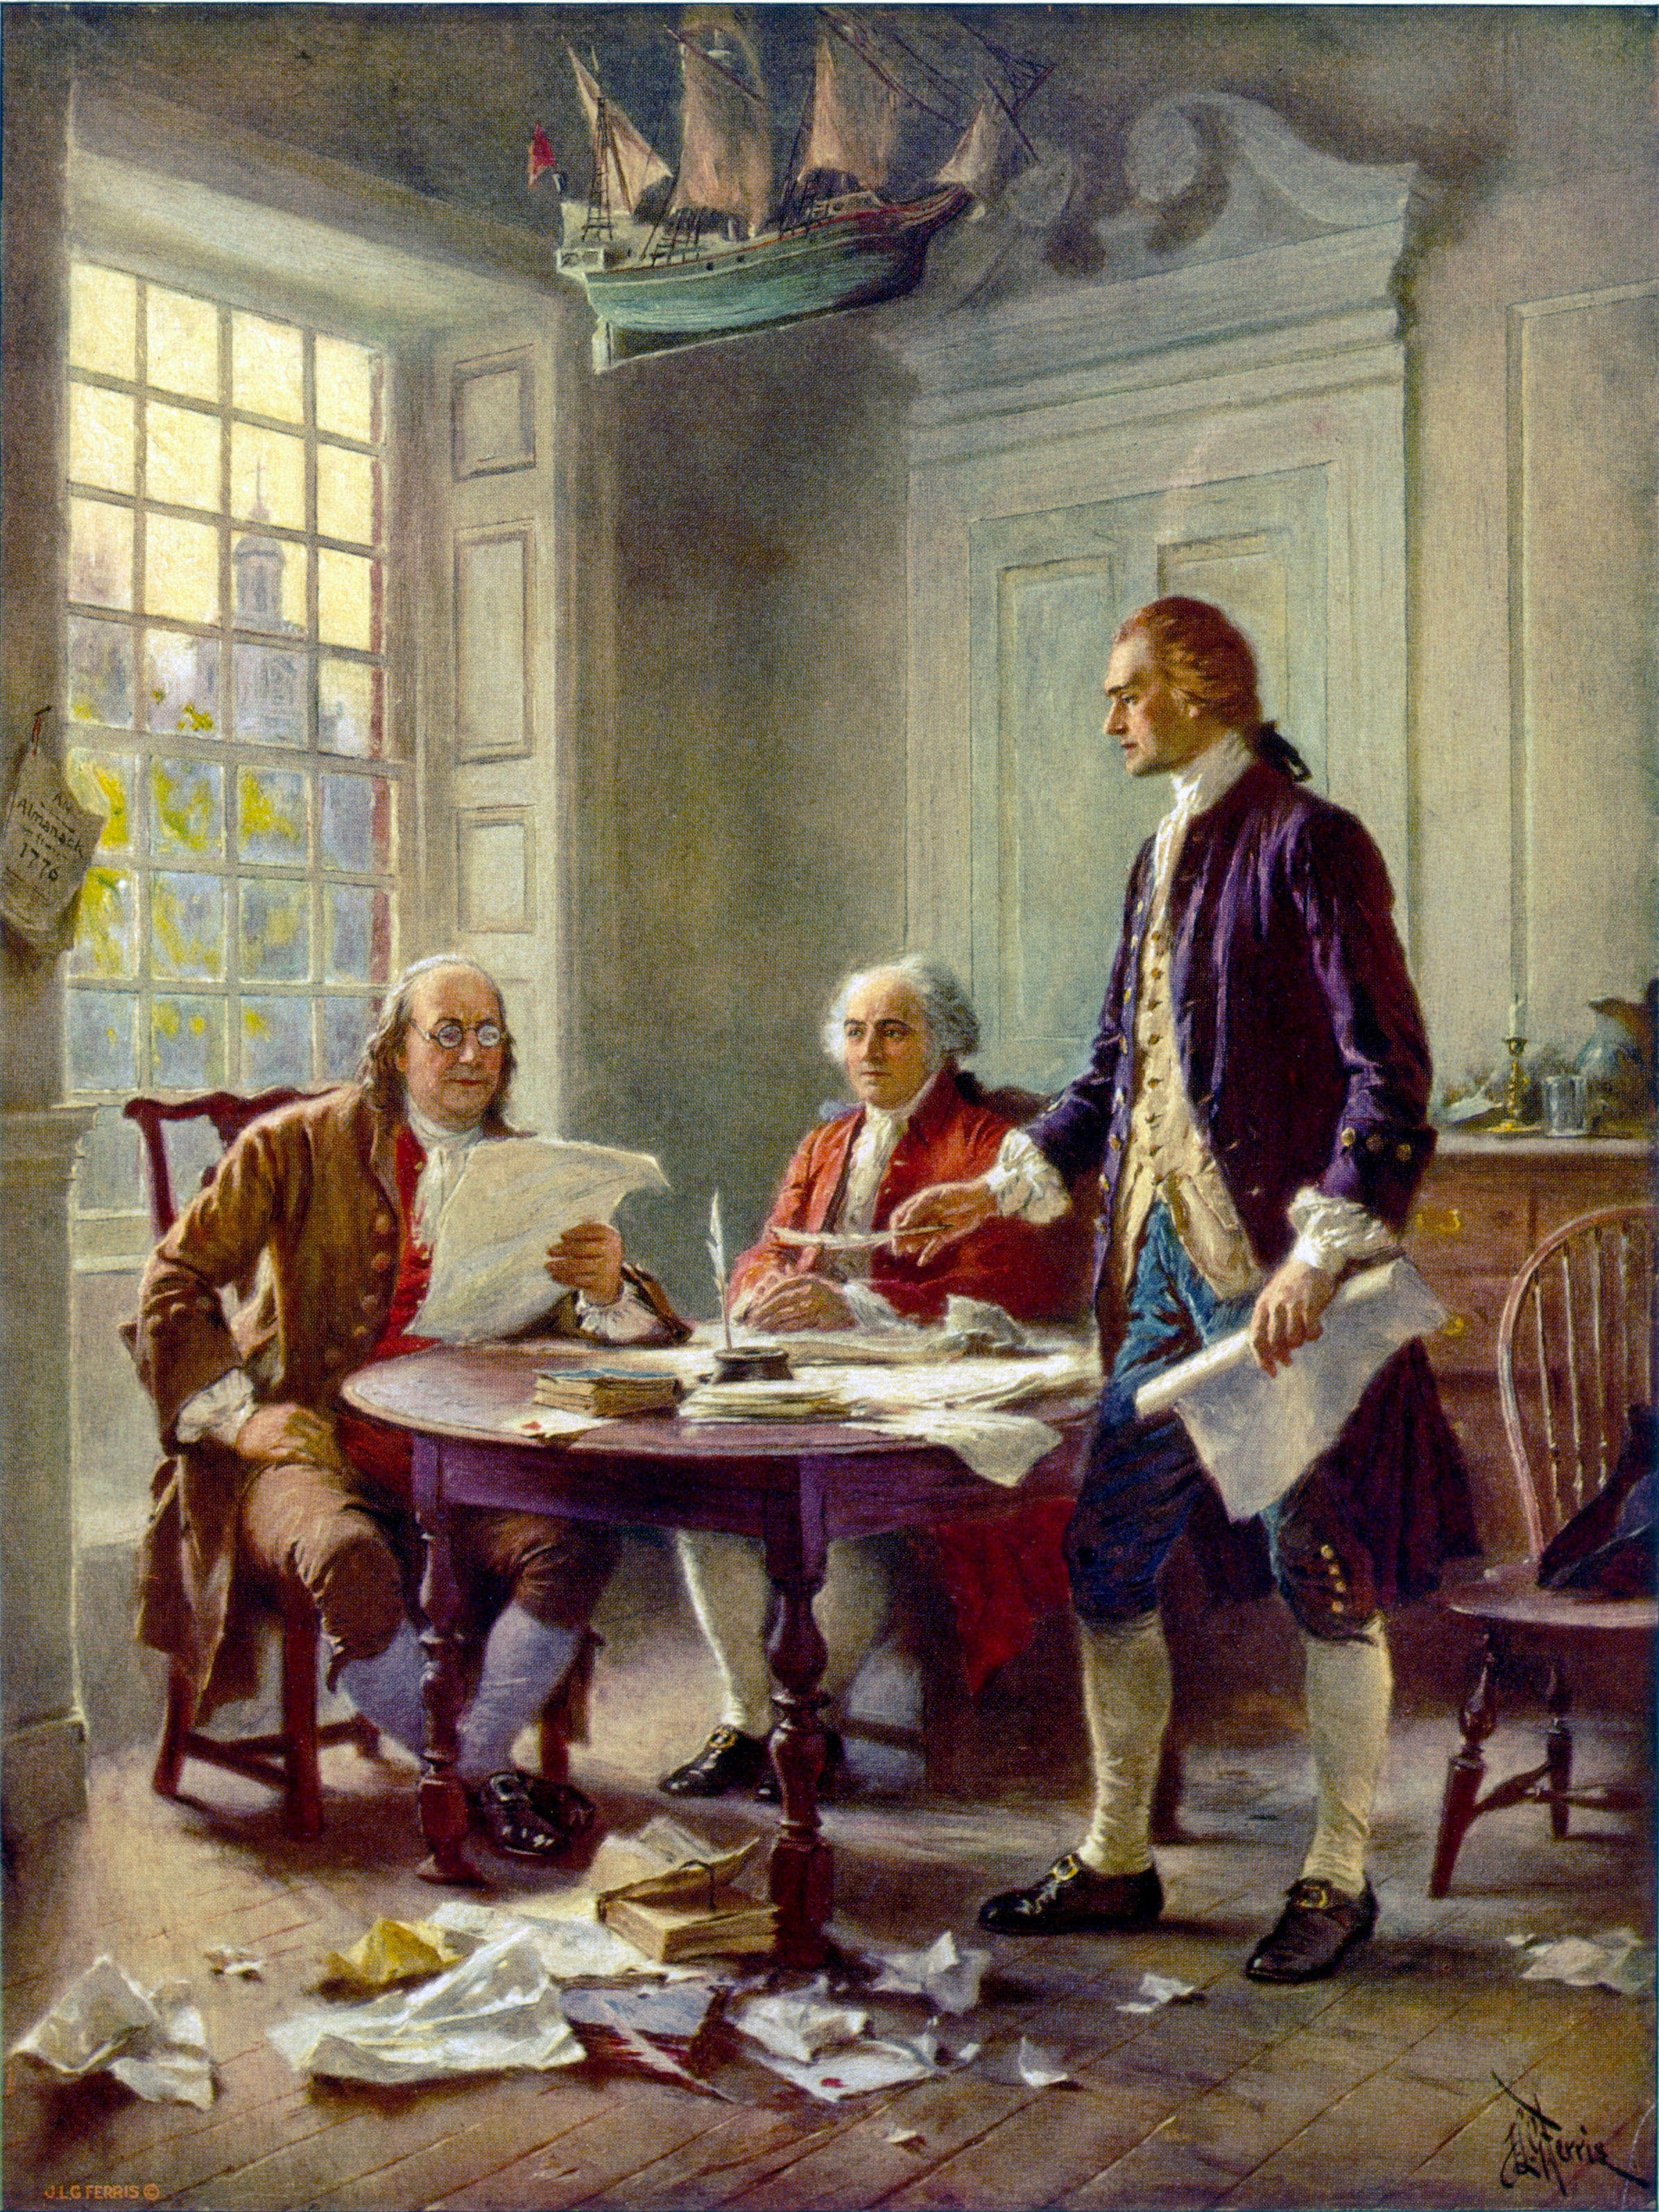 https://historymaniacmegan.files.wordpress.com/2015/07/writing_the_declaration_of_independence_1776_cph-3g09904.jpg